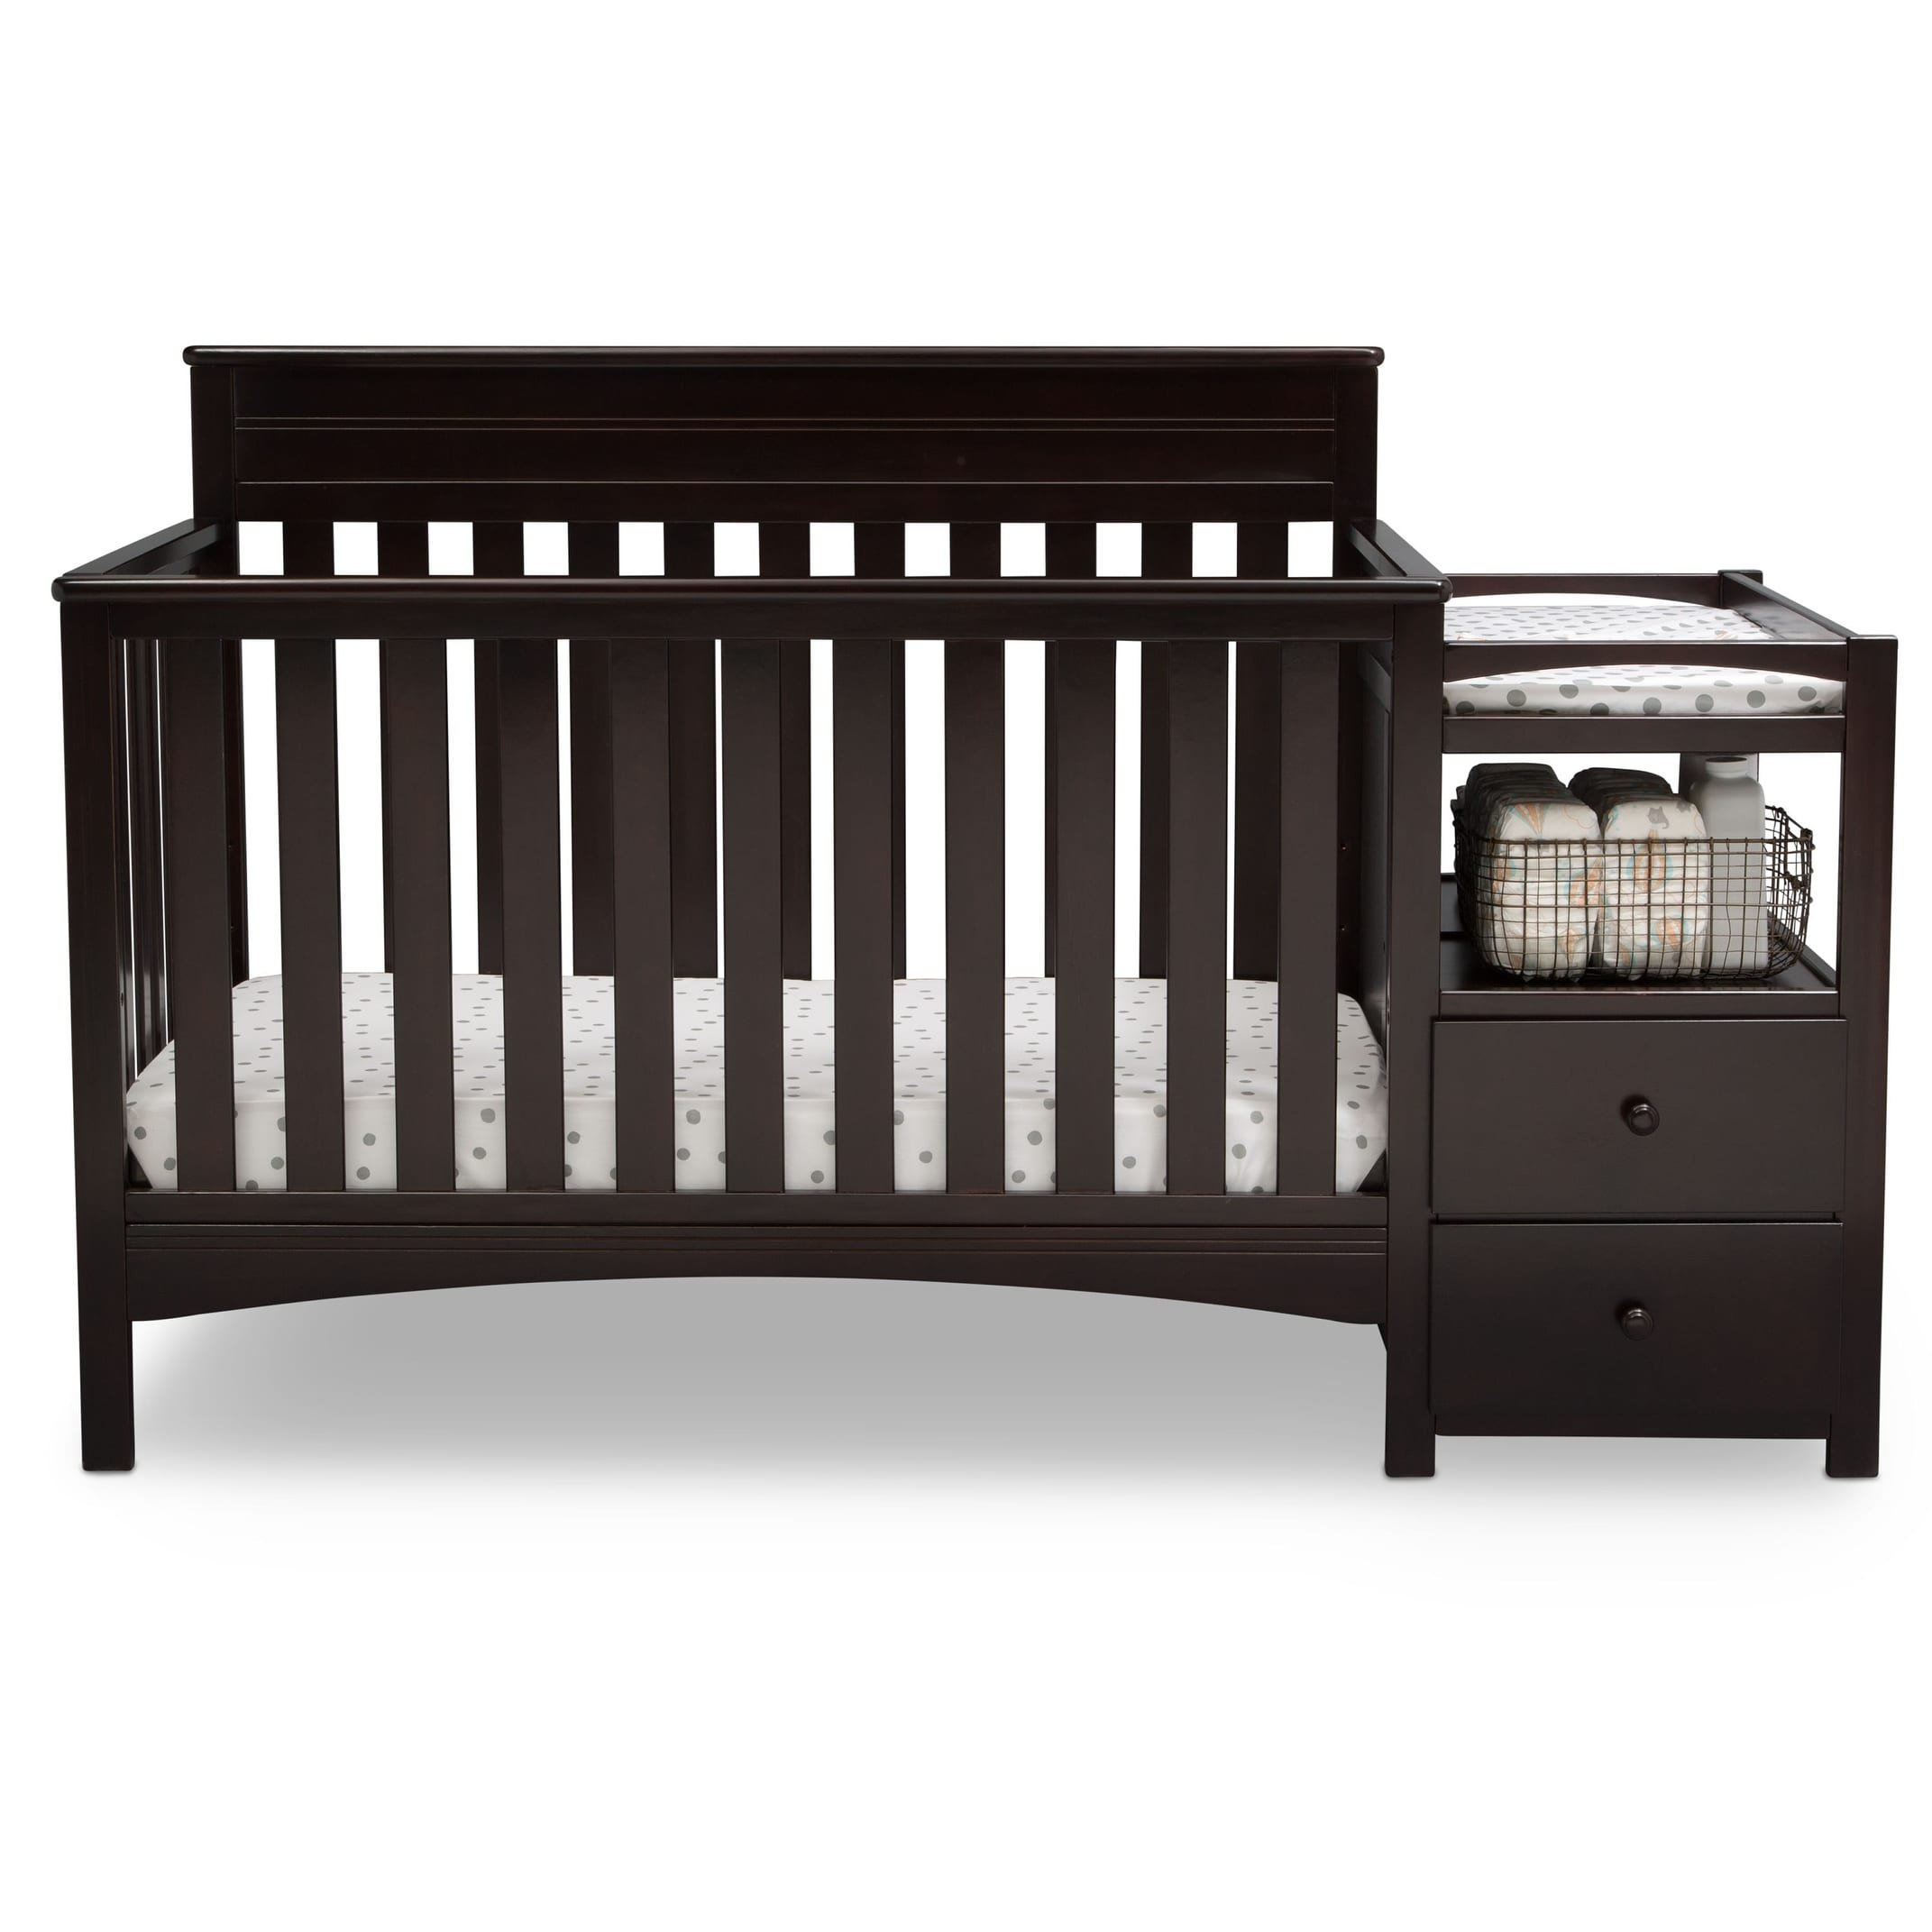 wood dream garden grey charlotte home product crib in cribs on overstock convertible shipping me free today